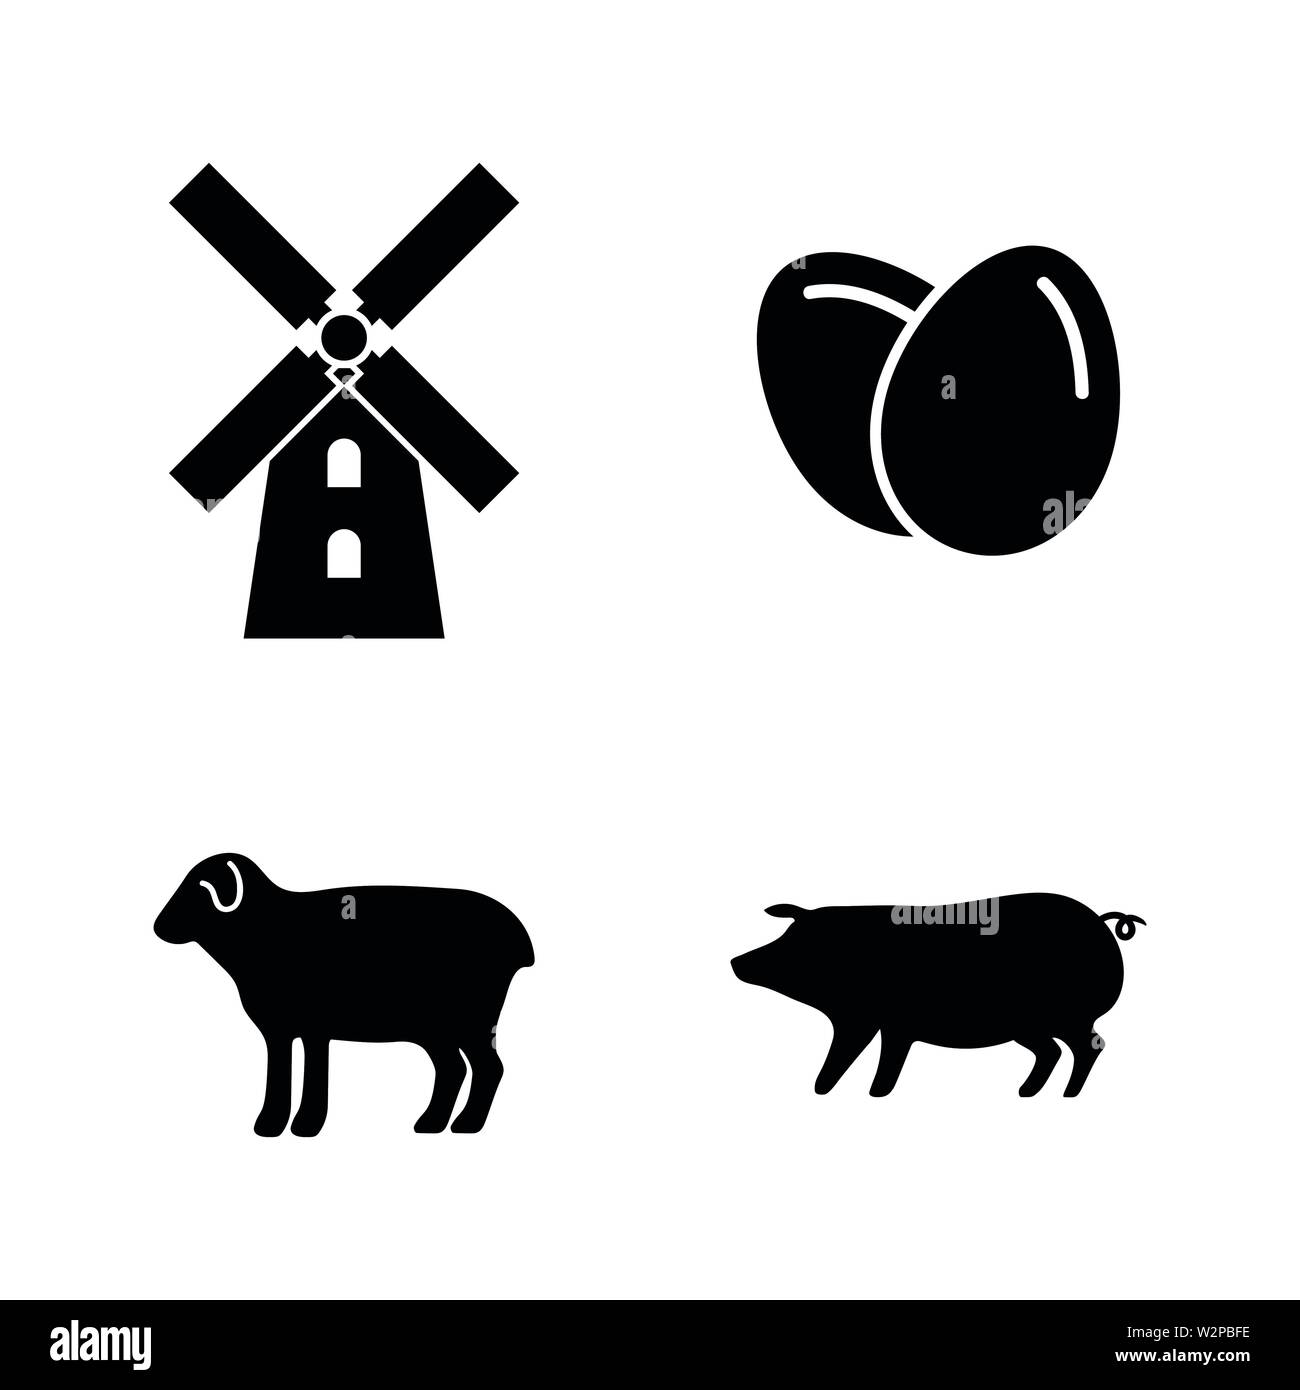 Farming. Simple Related Vector Icons Set for Video, Mobile Apps, Web Sites, Print Projects and Your Design. Black Flat Illustration on White Backgroun Stock Vector